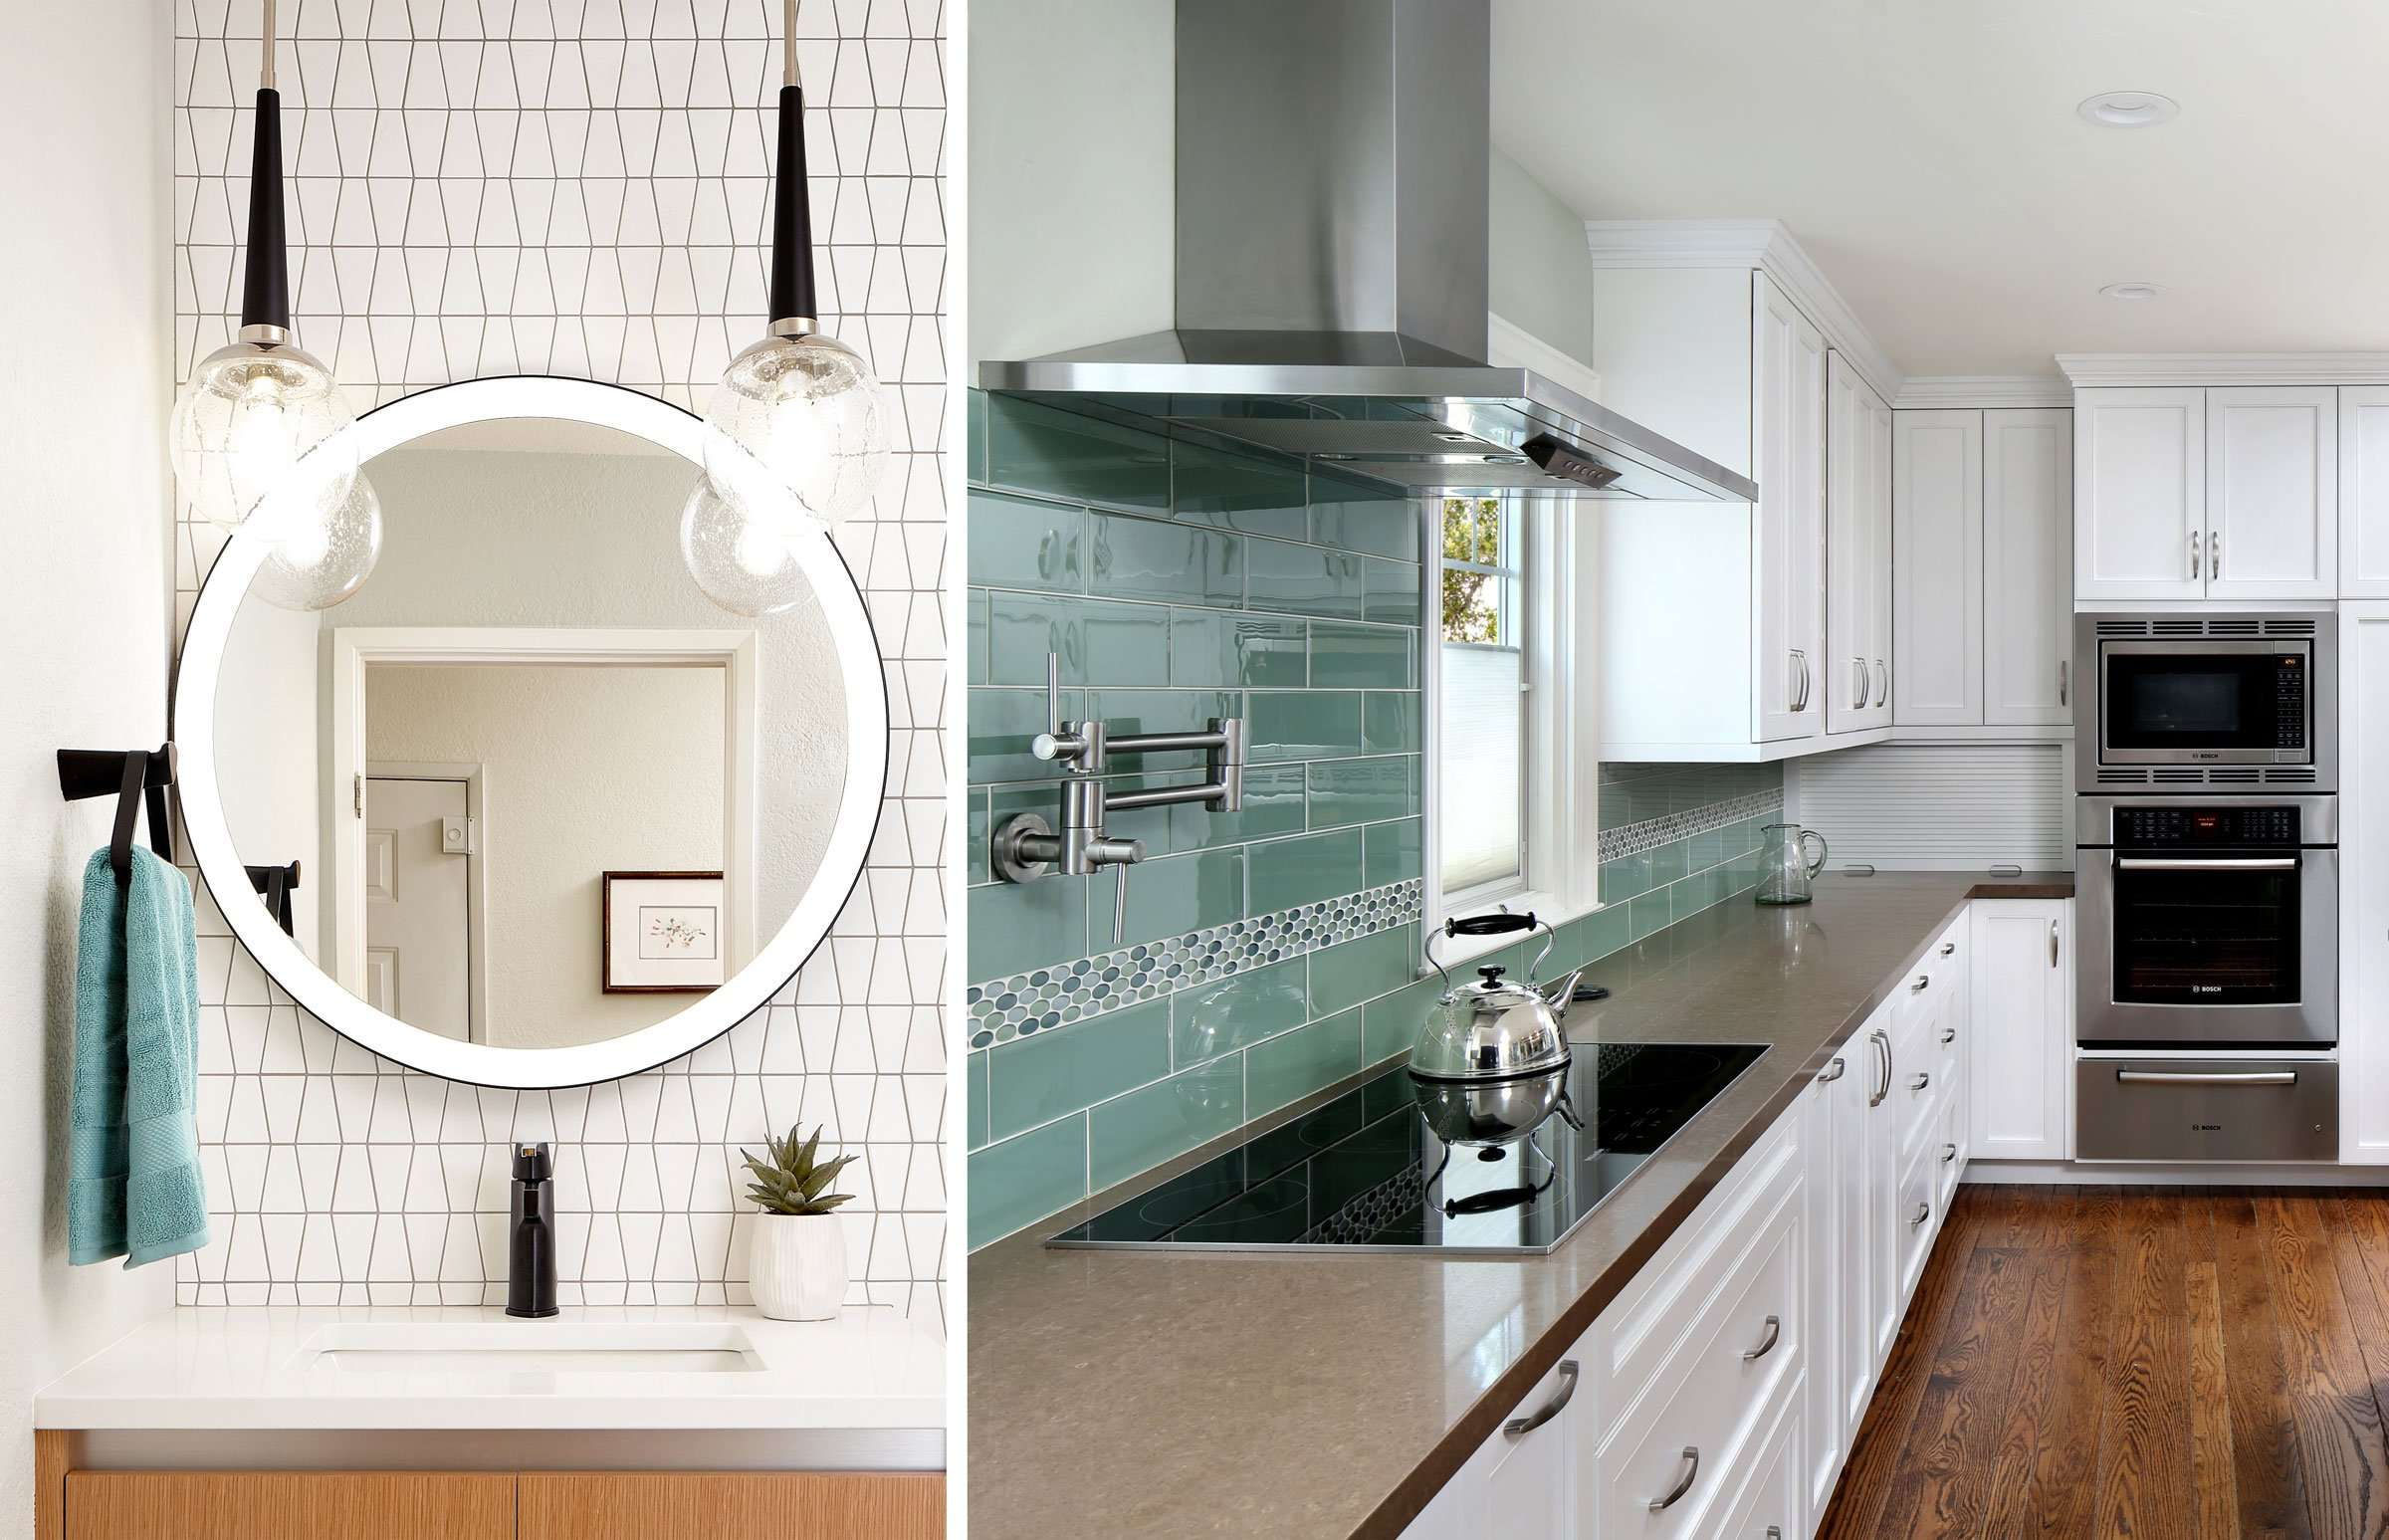 Collage of white bathroom sink and kitchen with blue backsplash